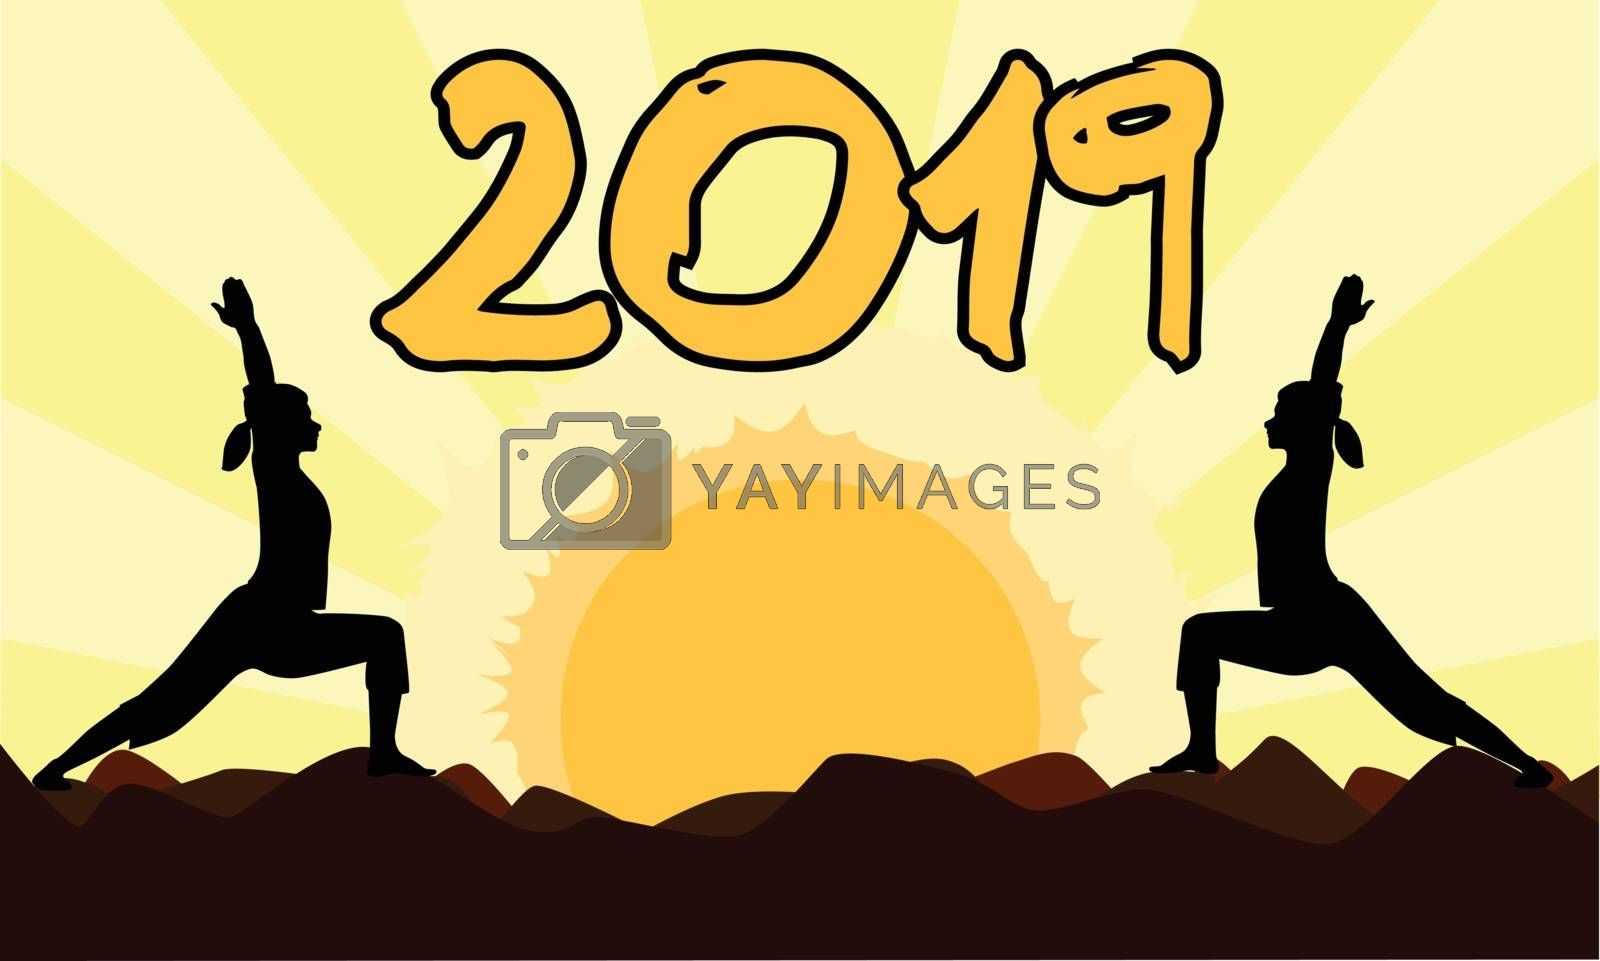 2 yoga poses performed by young women in silhouette set against a yellow sunset with the date 2019